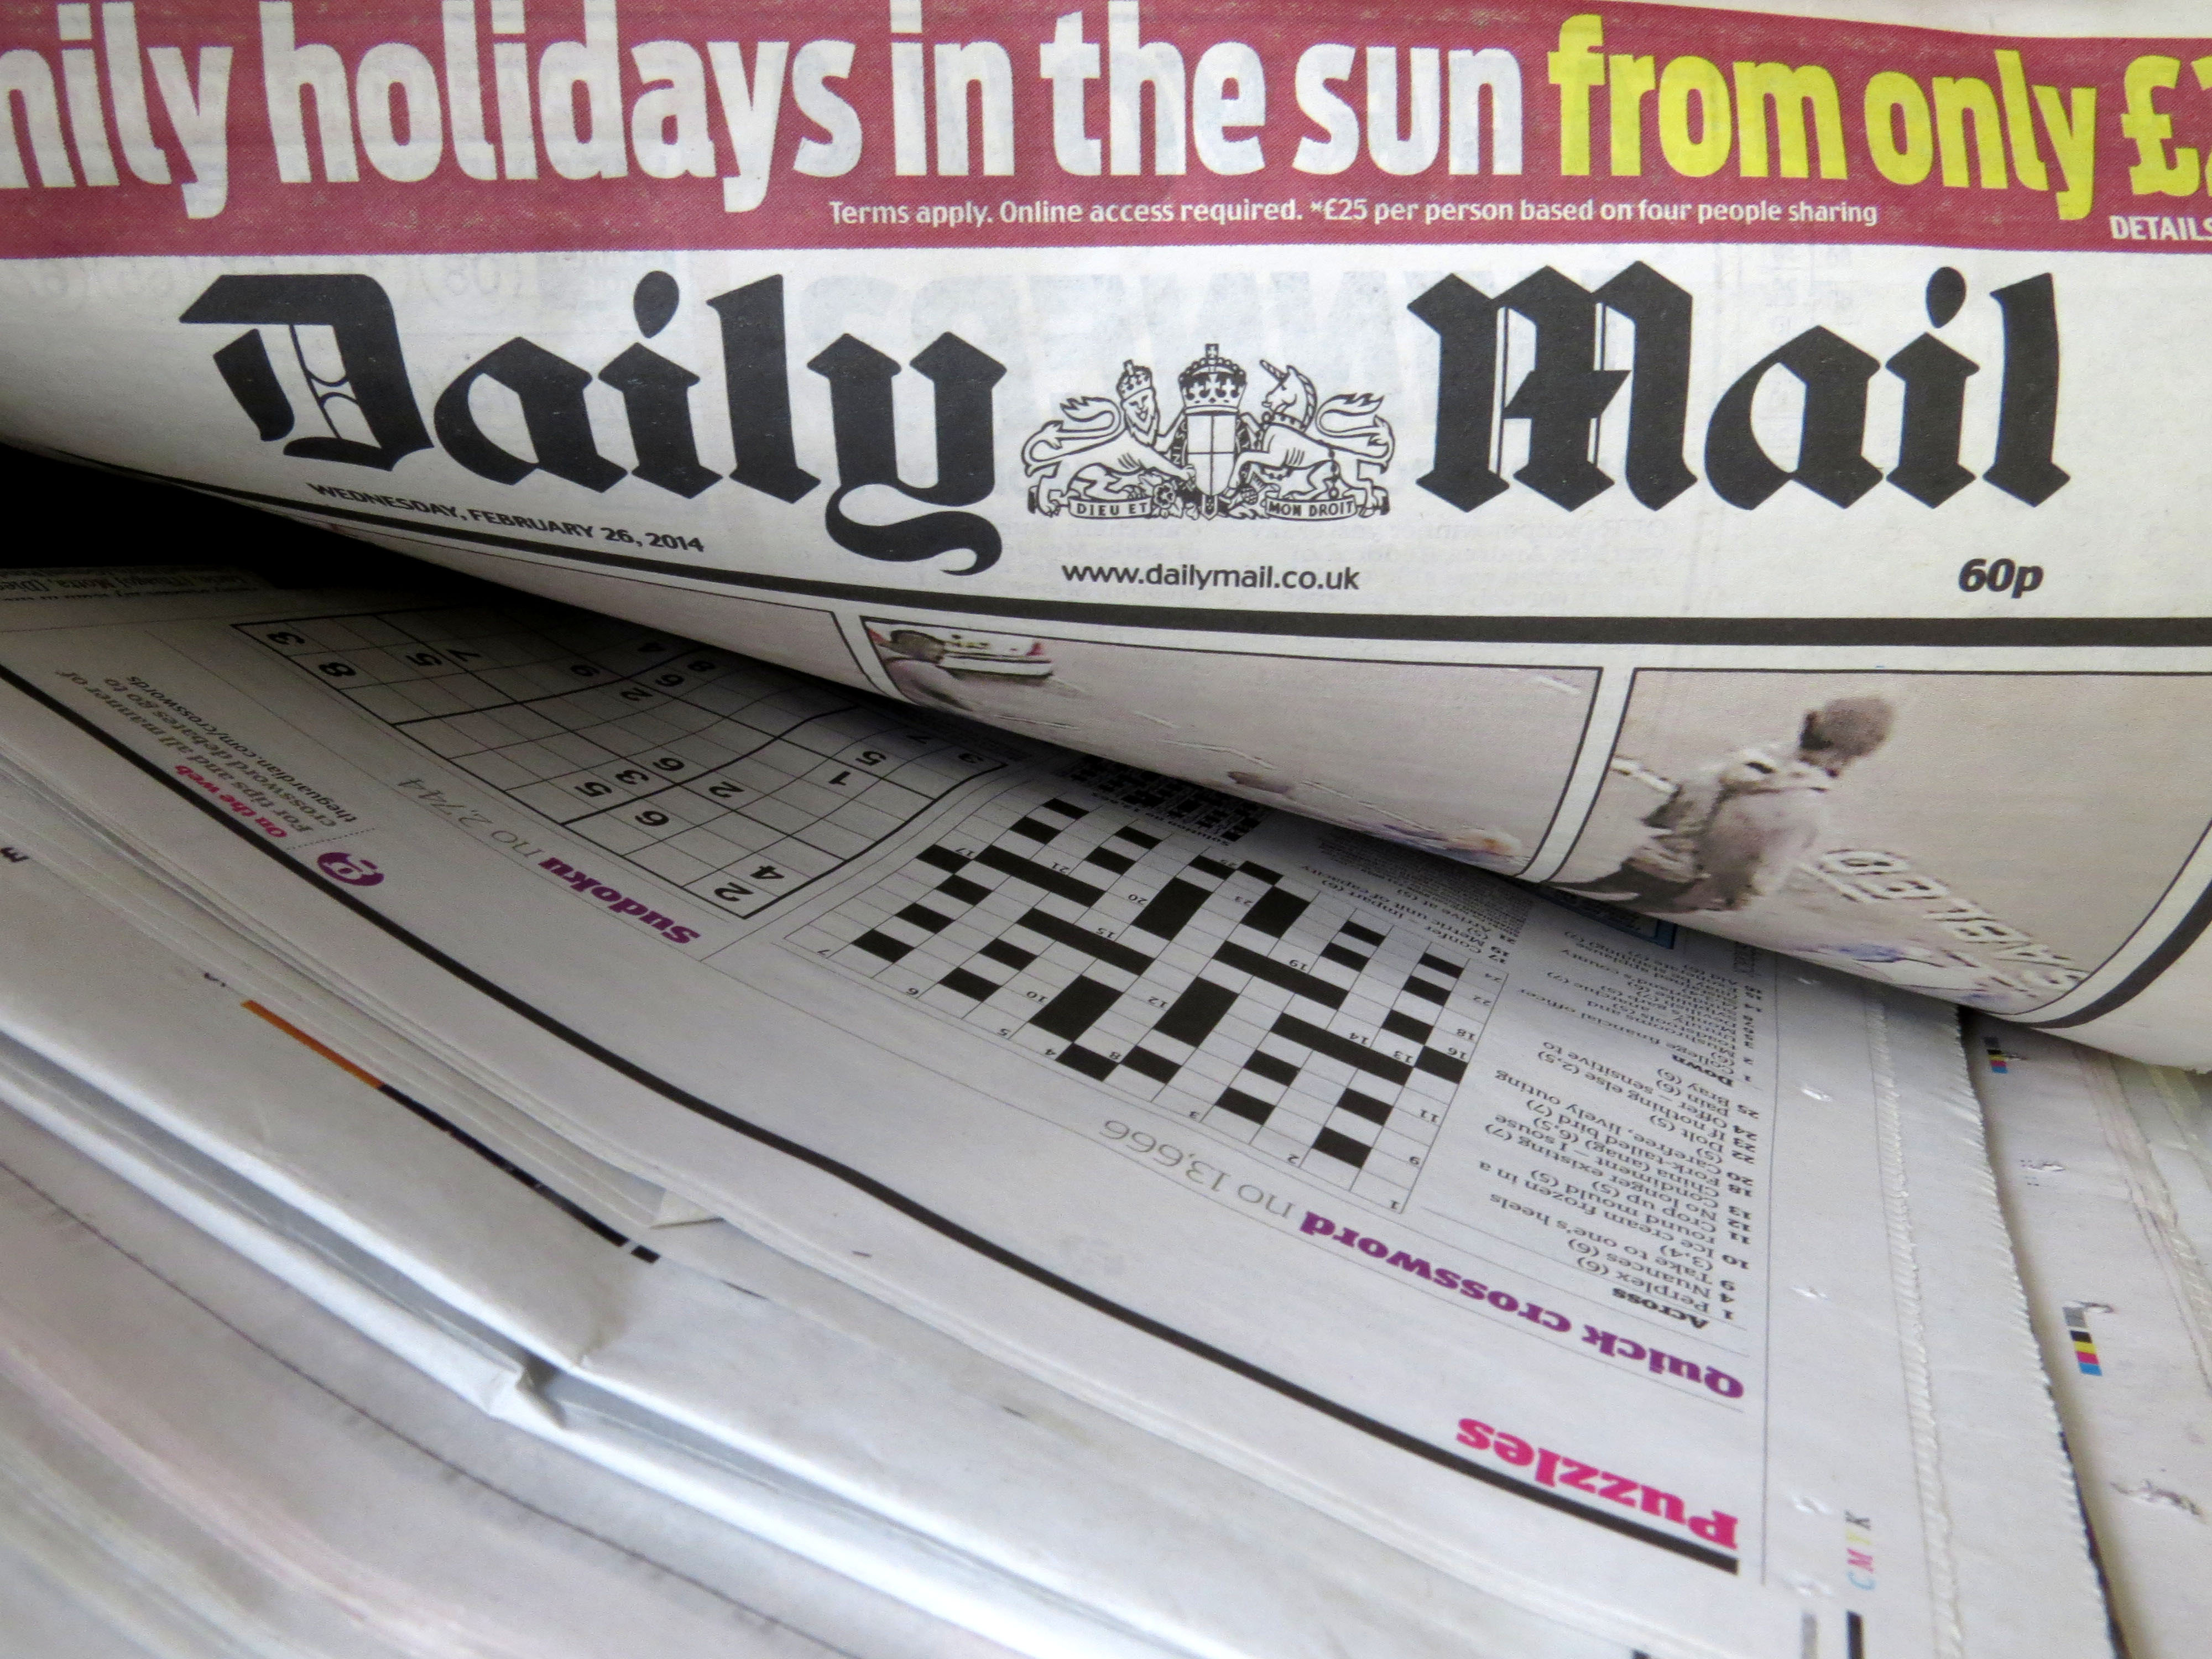 Virgin Trains Will No Longer Stock Daily Mail On West Coast Route